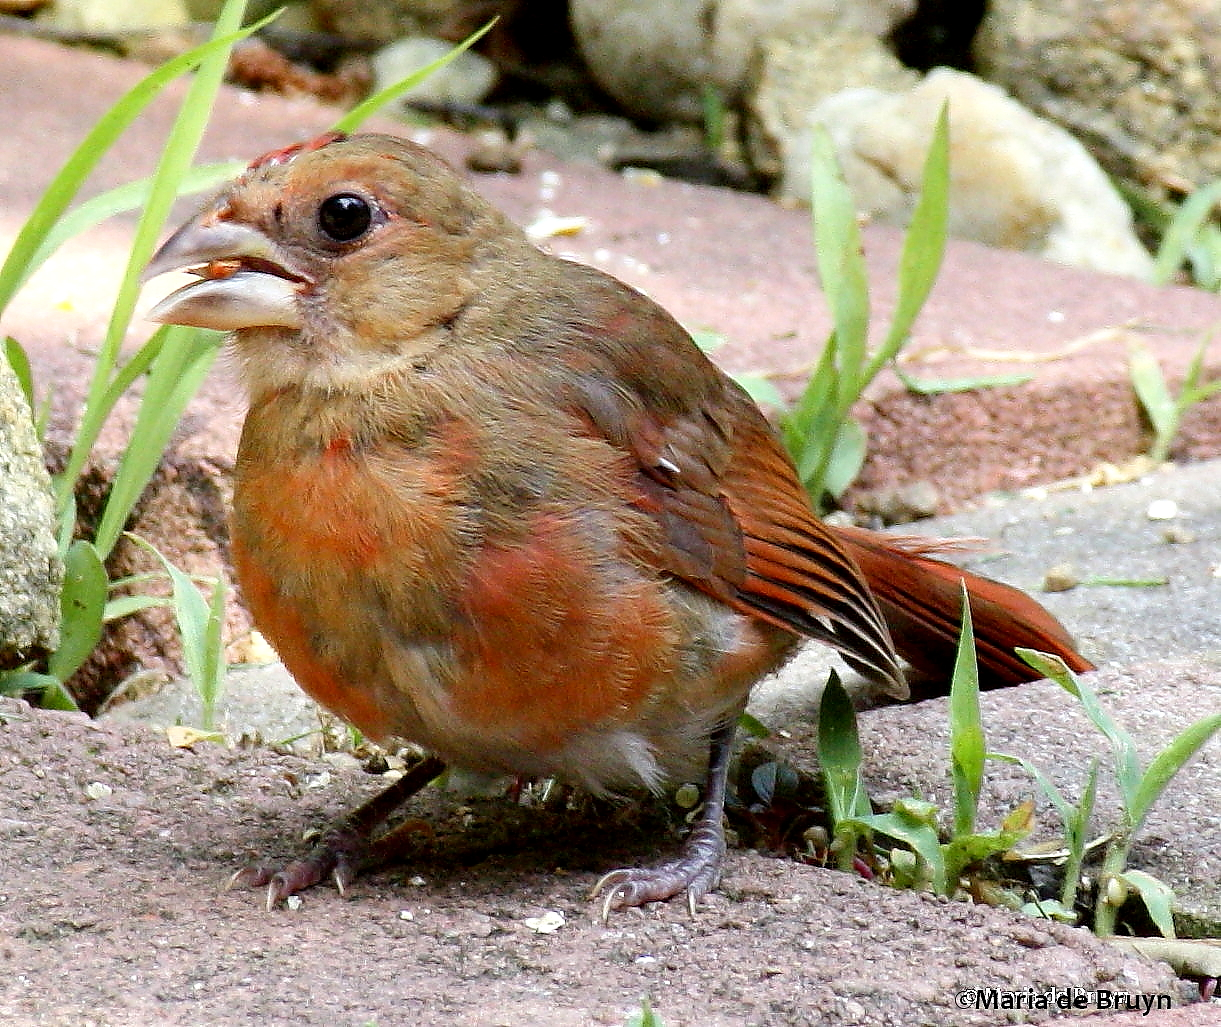 A bird may be known by its song